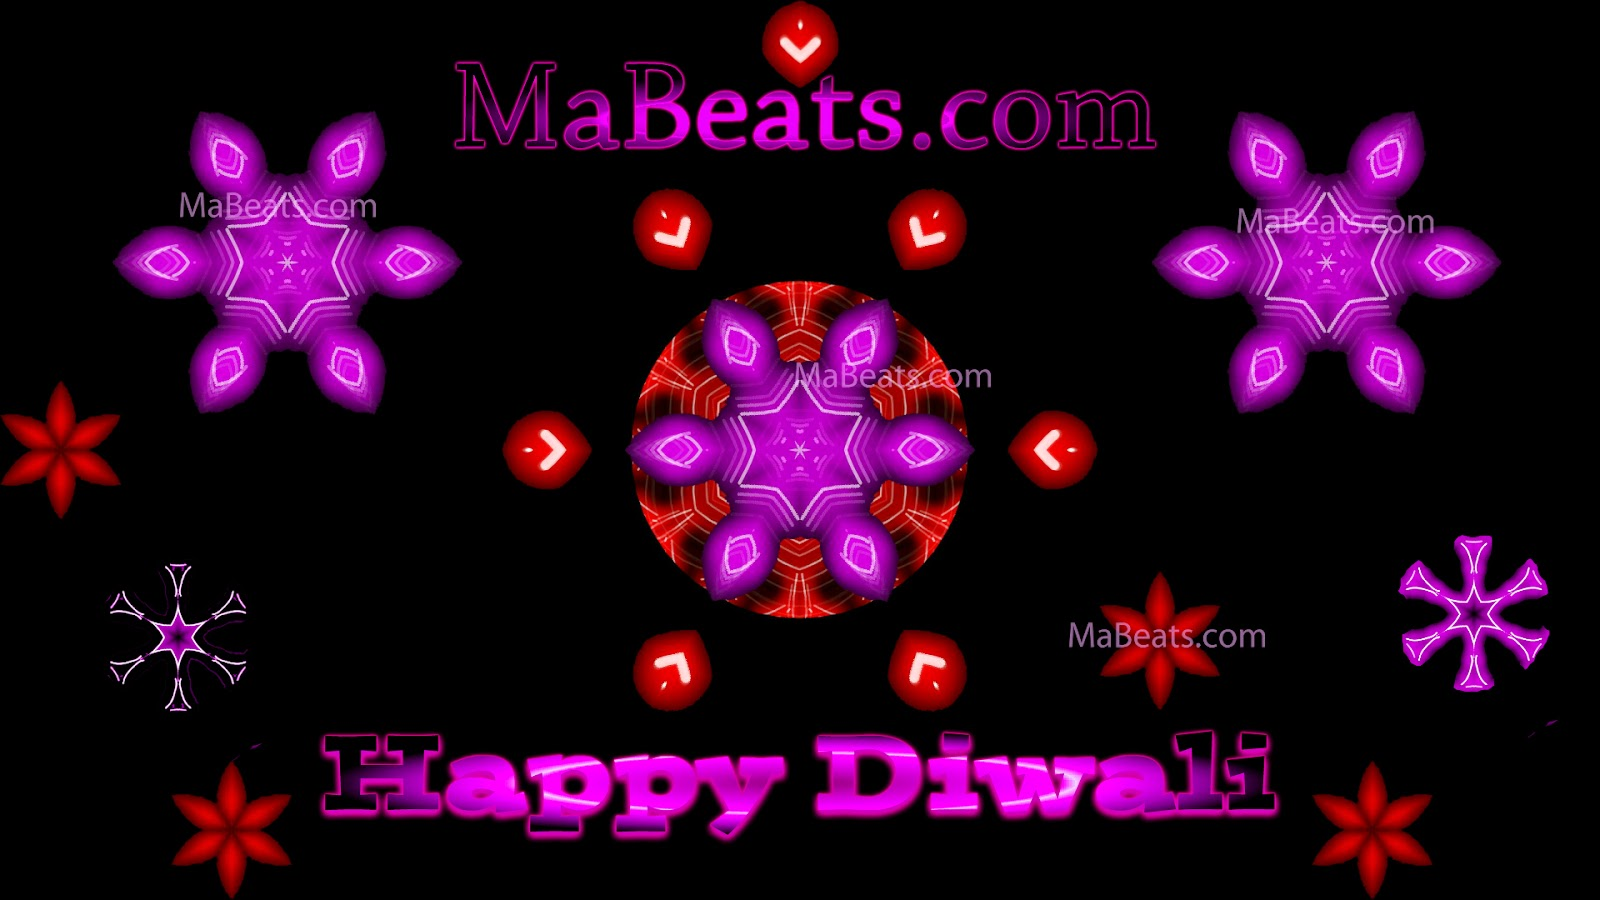 Happy Diwali - Sparkling wishes